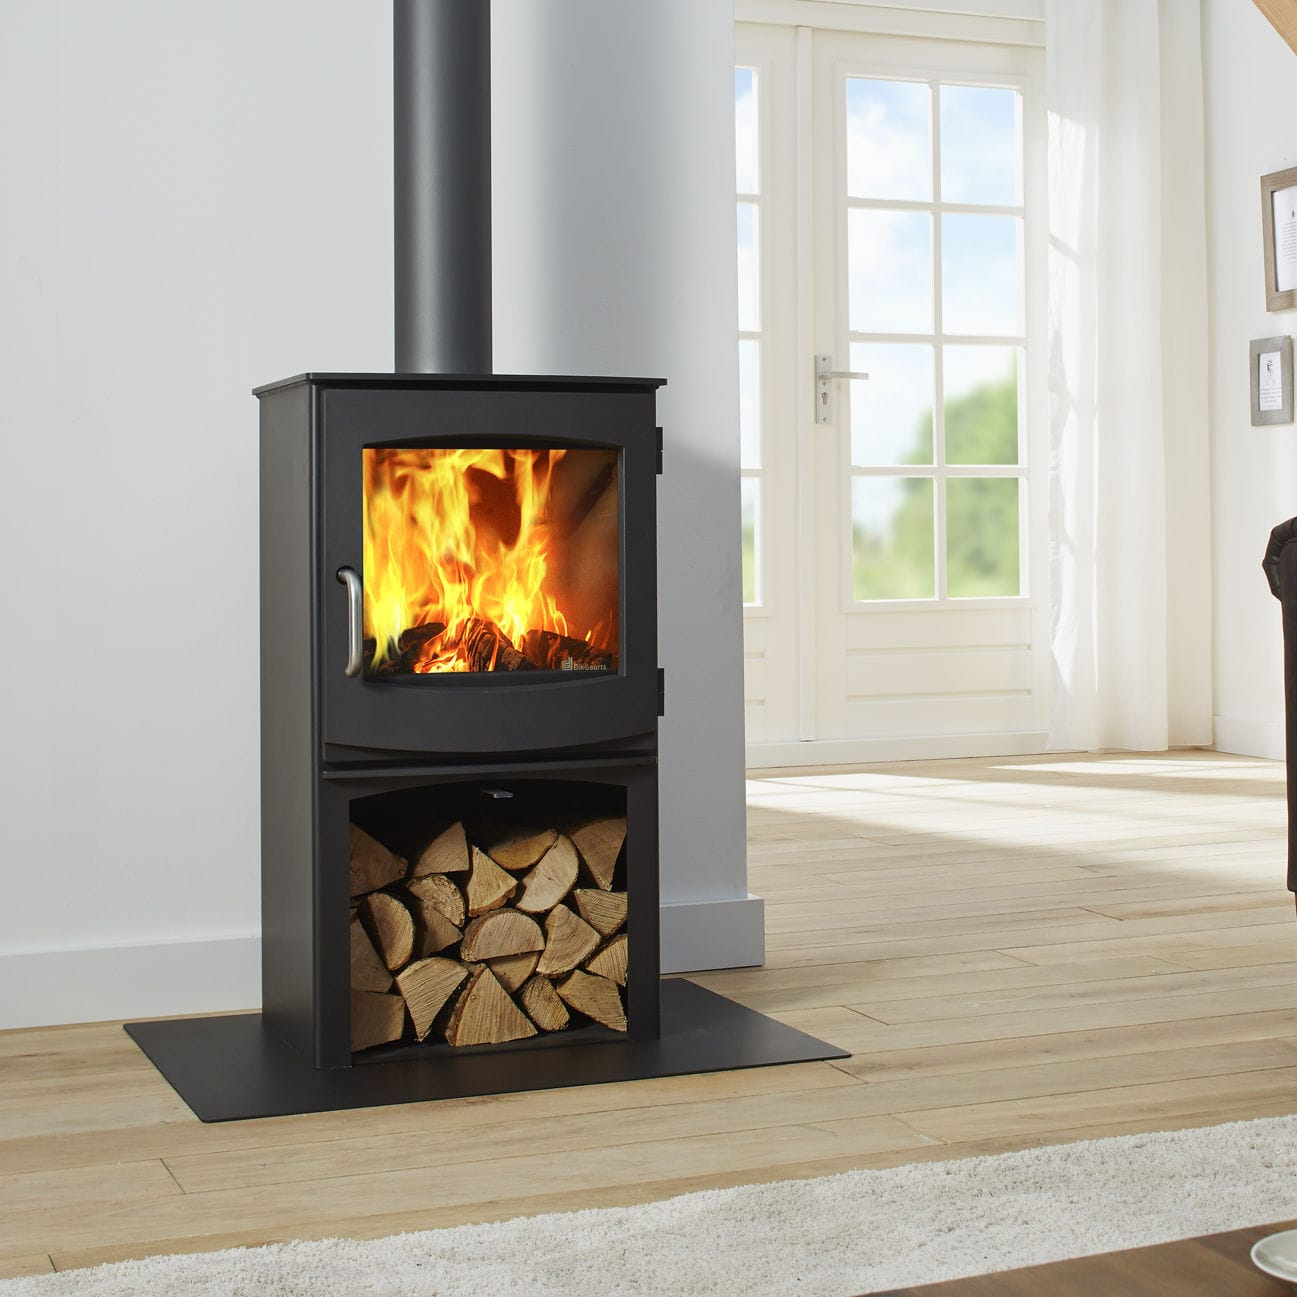 Wood heating stove / contemporary / cast iron - IVAR 5 STORE by ...